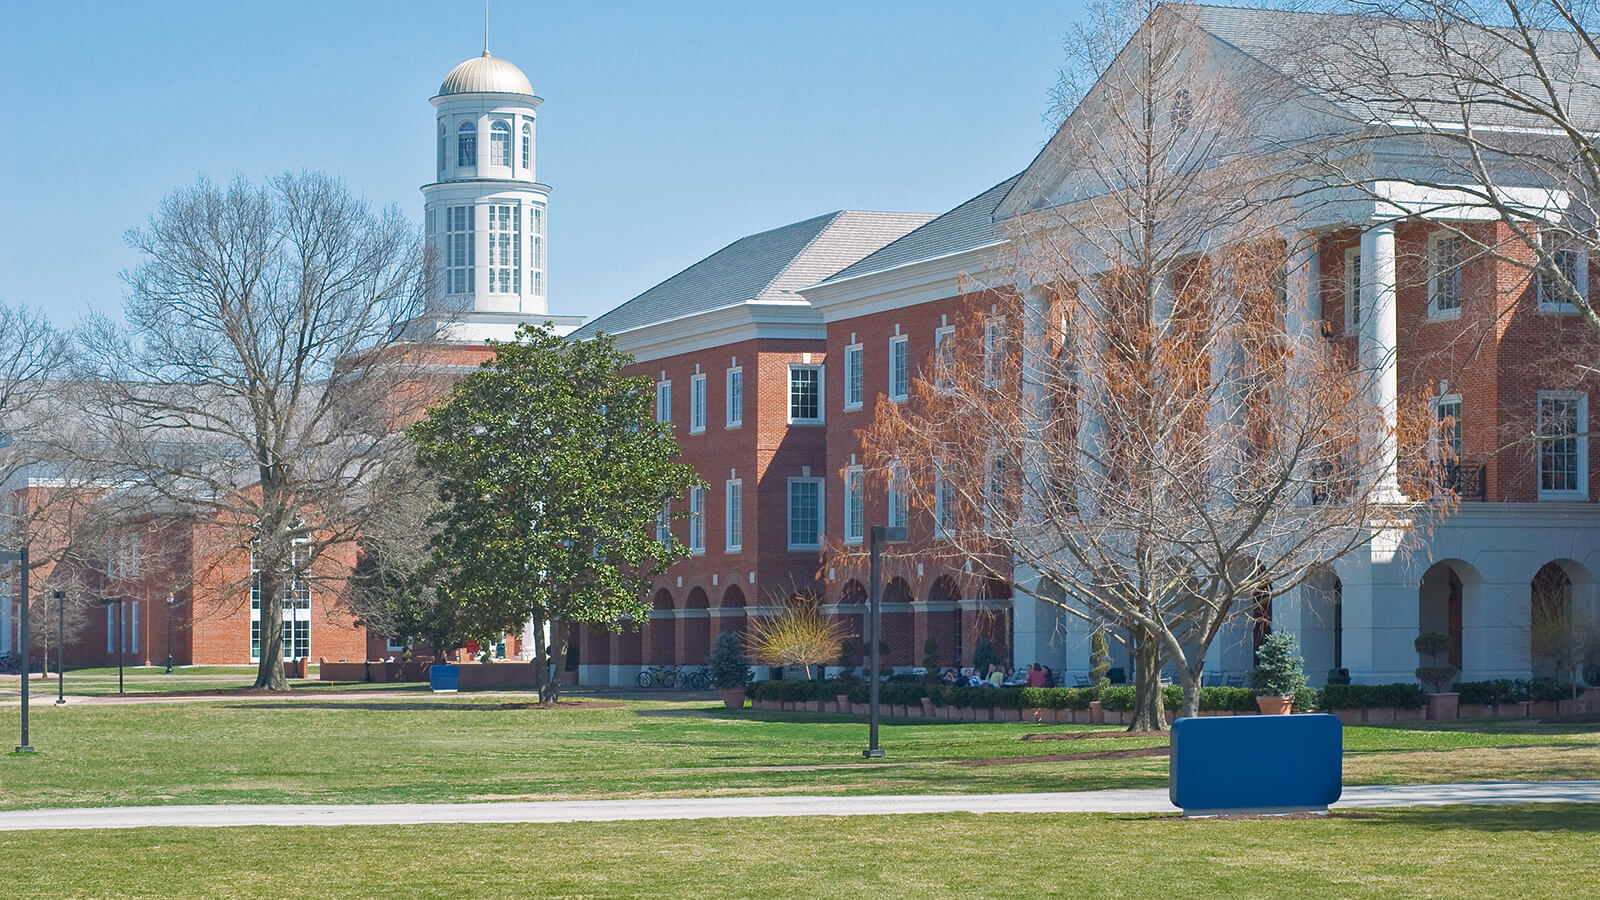 A view of a campus building at Christopher Newport University